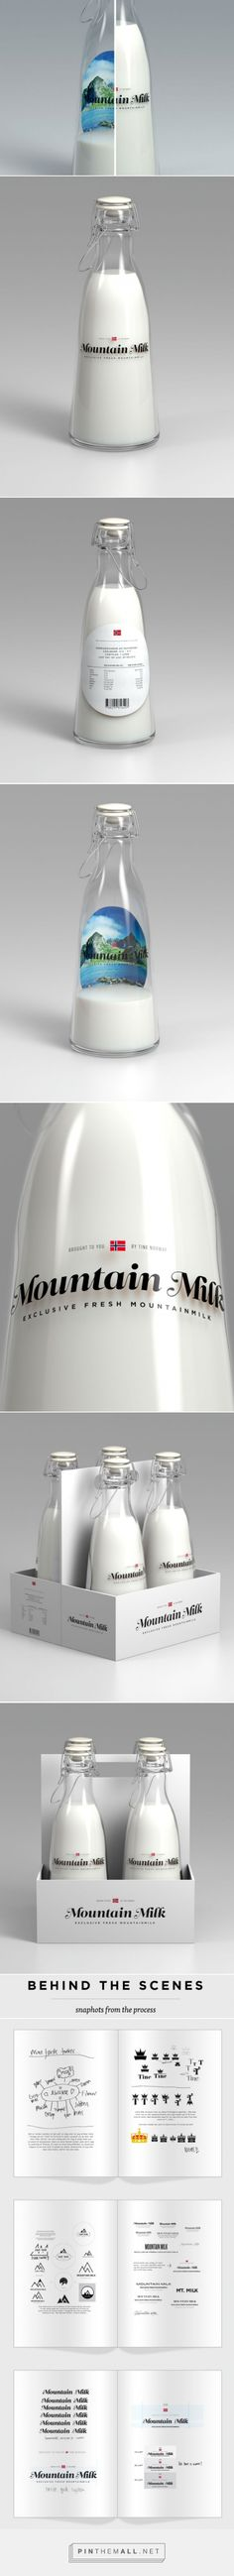 Mountain Milk (Student Work)